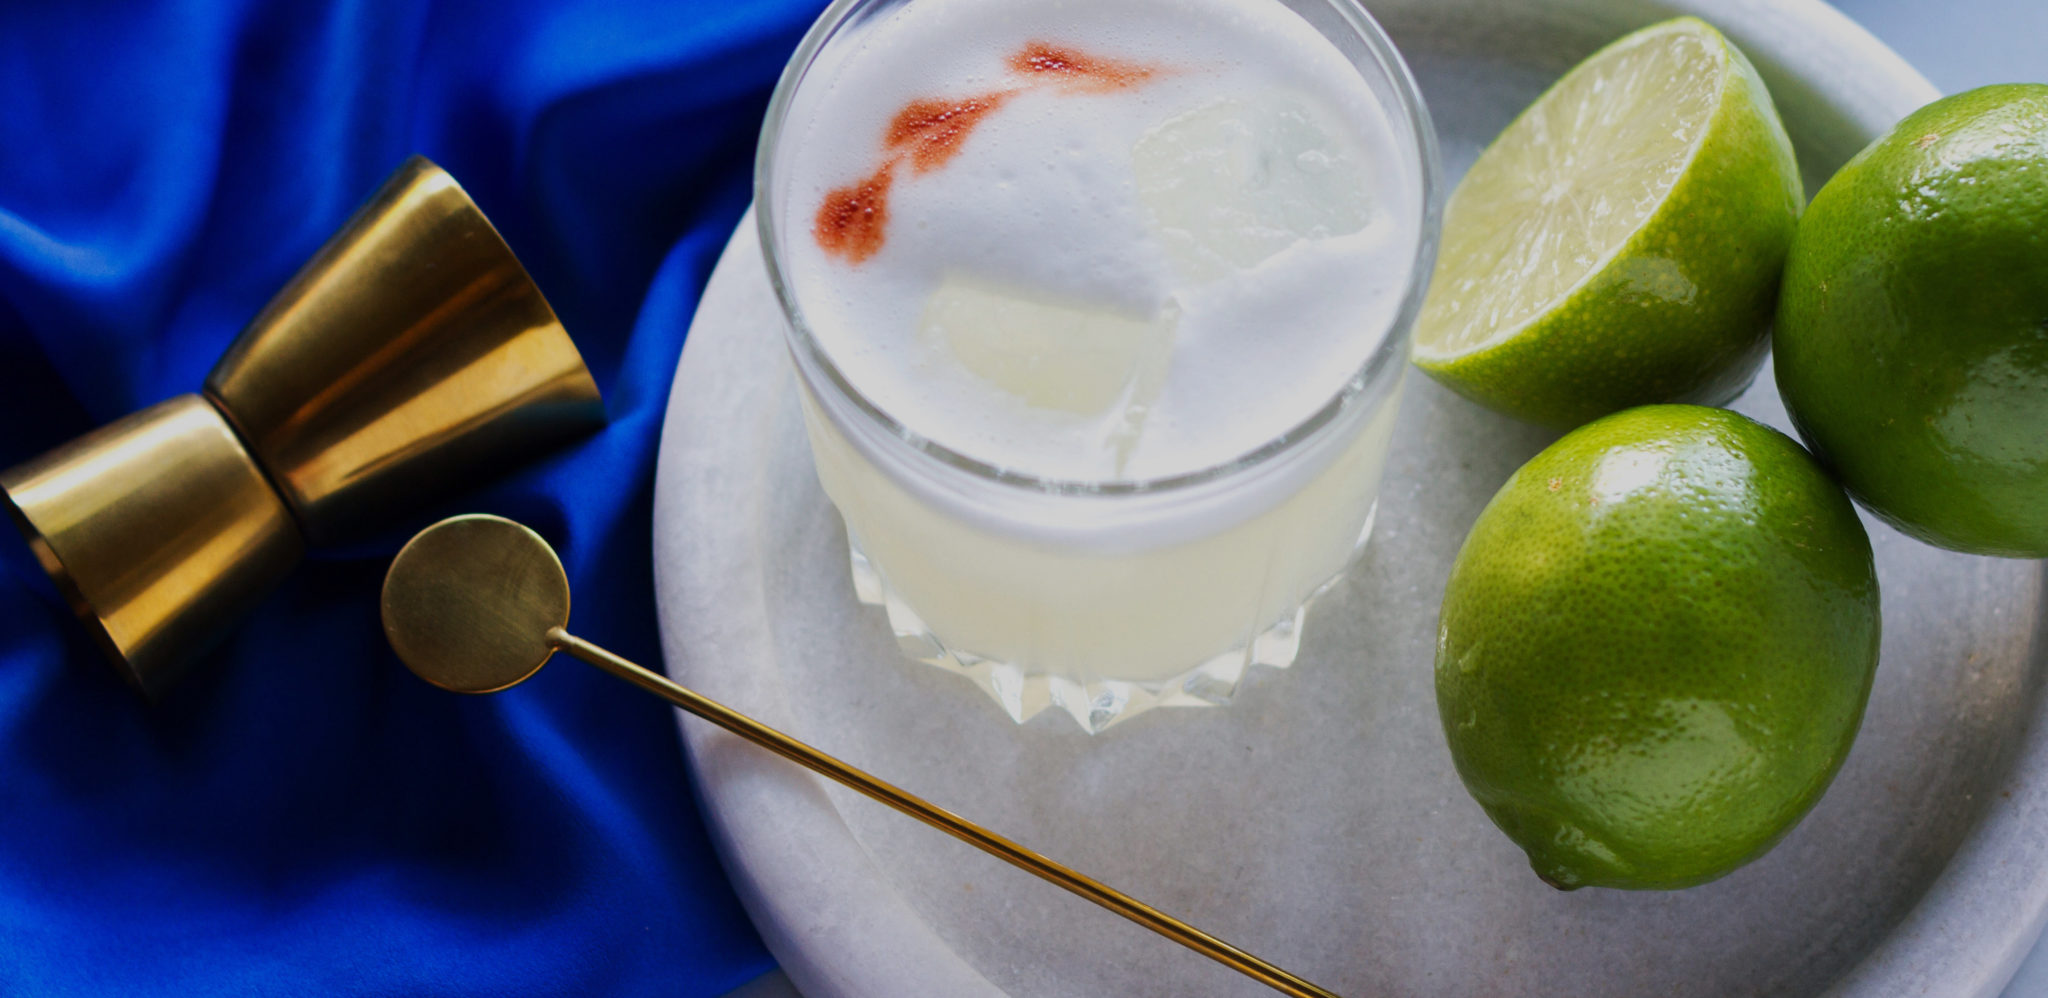 About Pisco 3